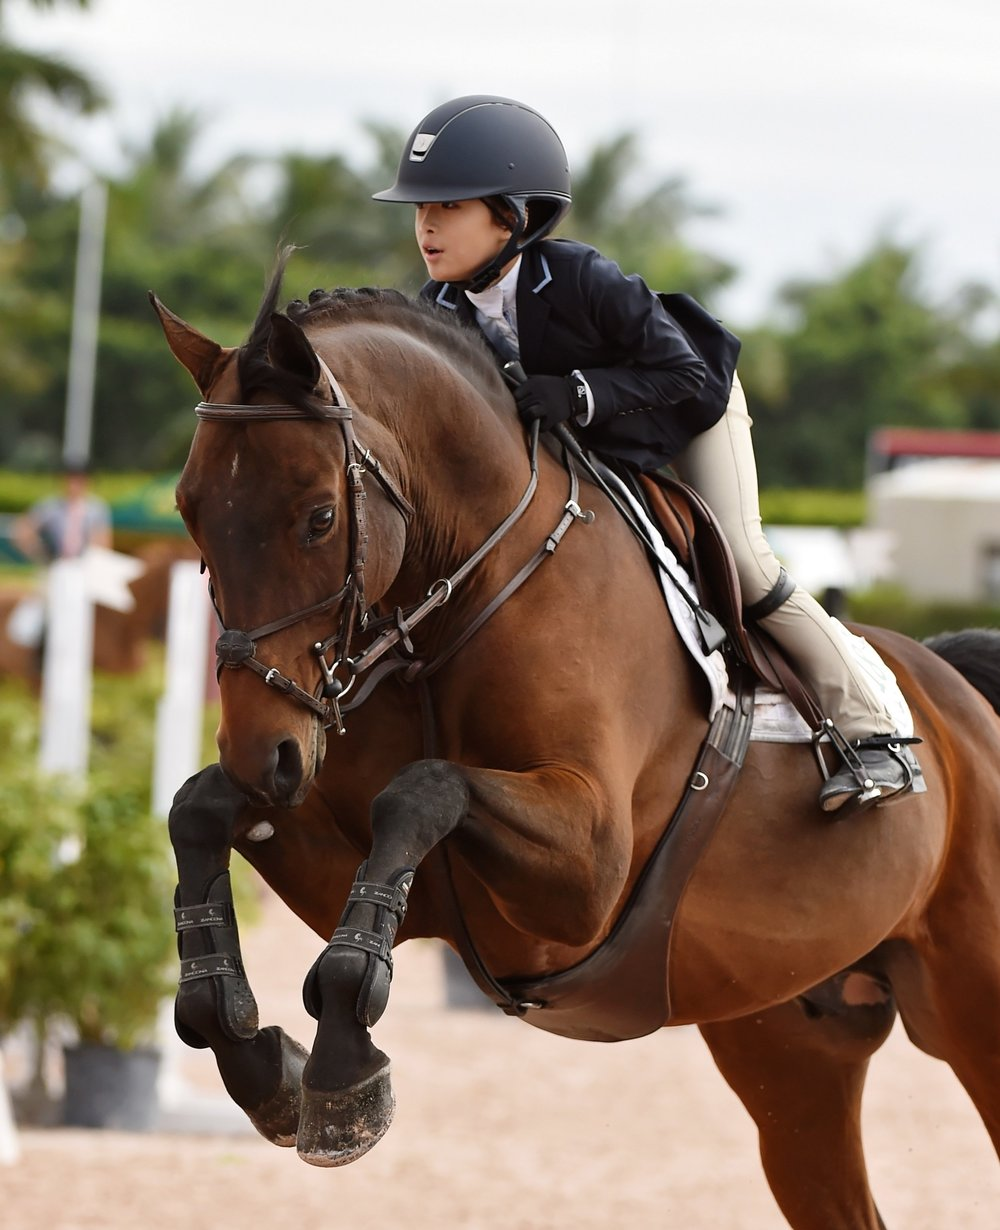 Chloe Jhin and Liberty have been a successful pair. Here they are during WEF. Photo by Anne Gittins Photography.